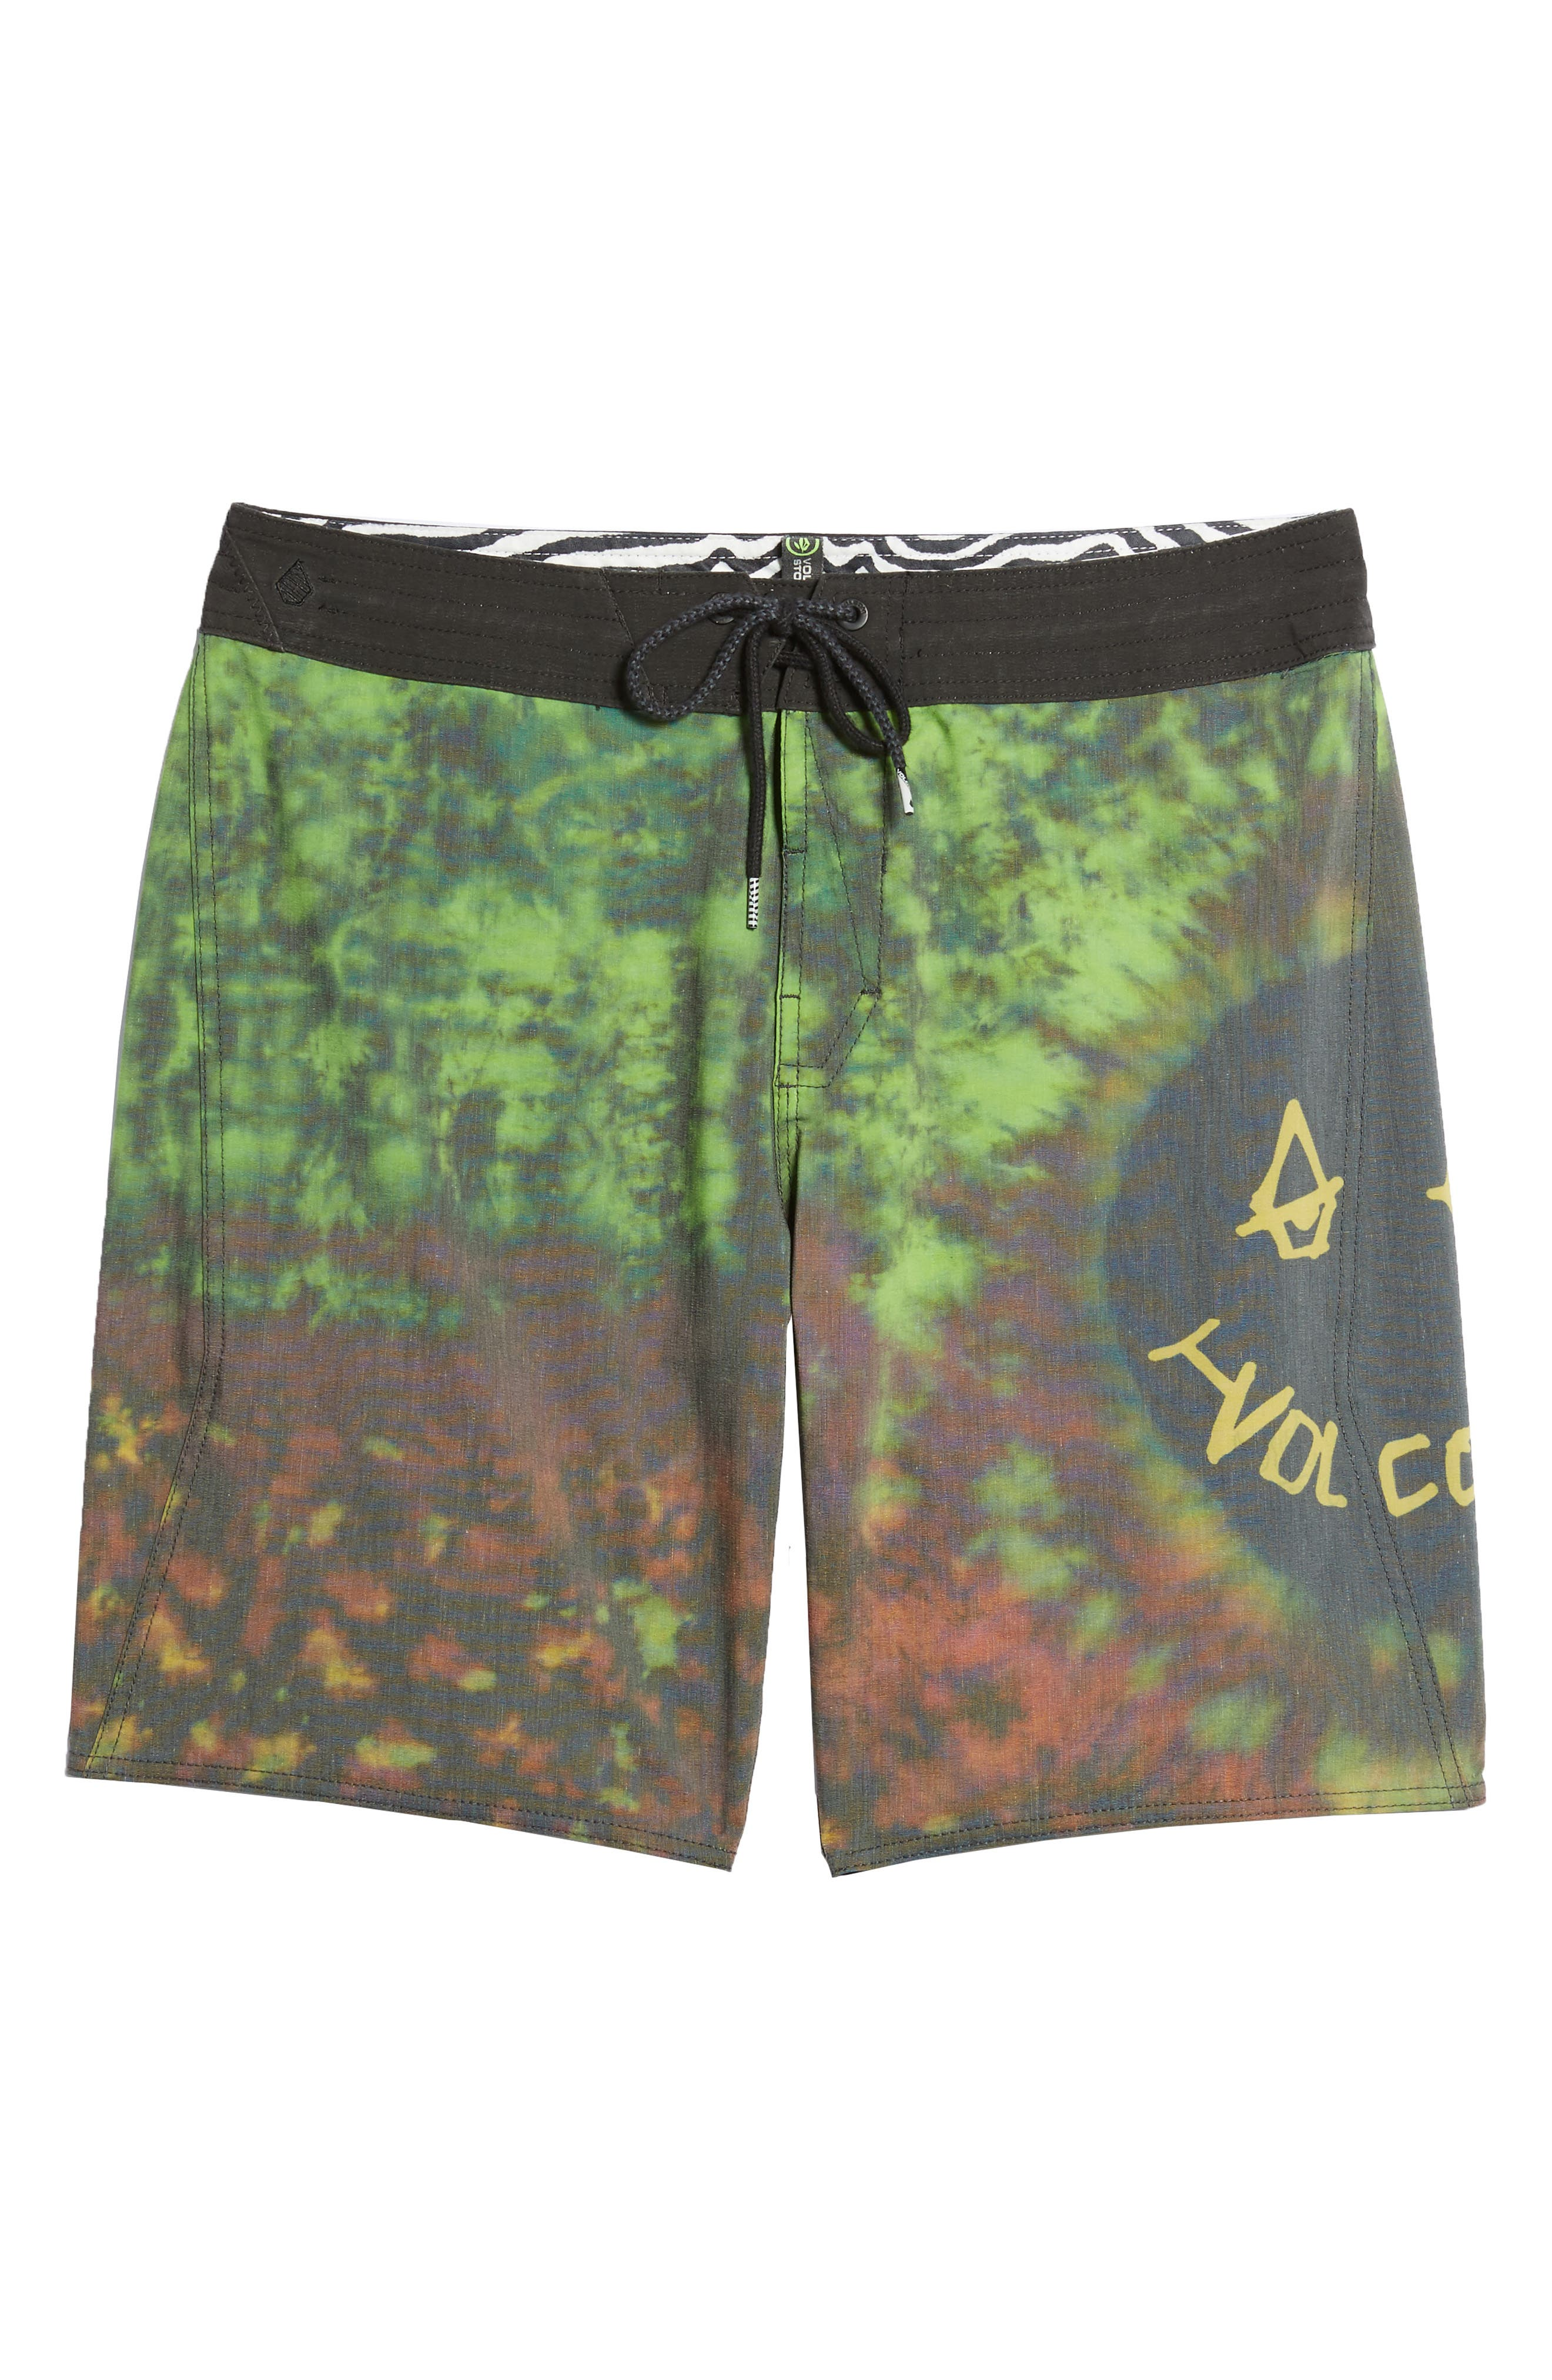 Chill Out Stoney Board Shorts,                             Alternate thumbnail 6, color,                             001